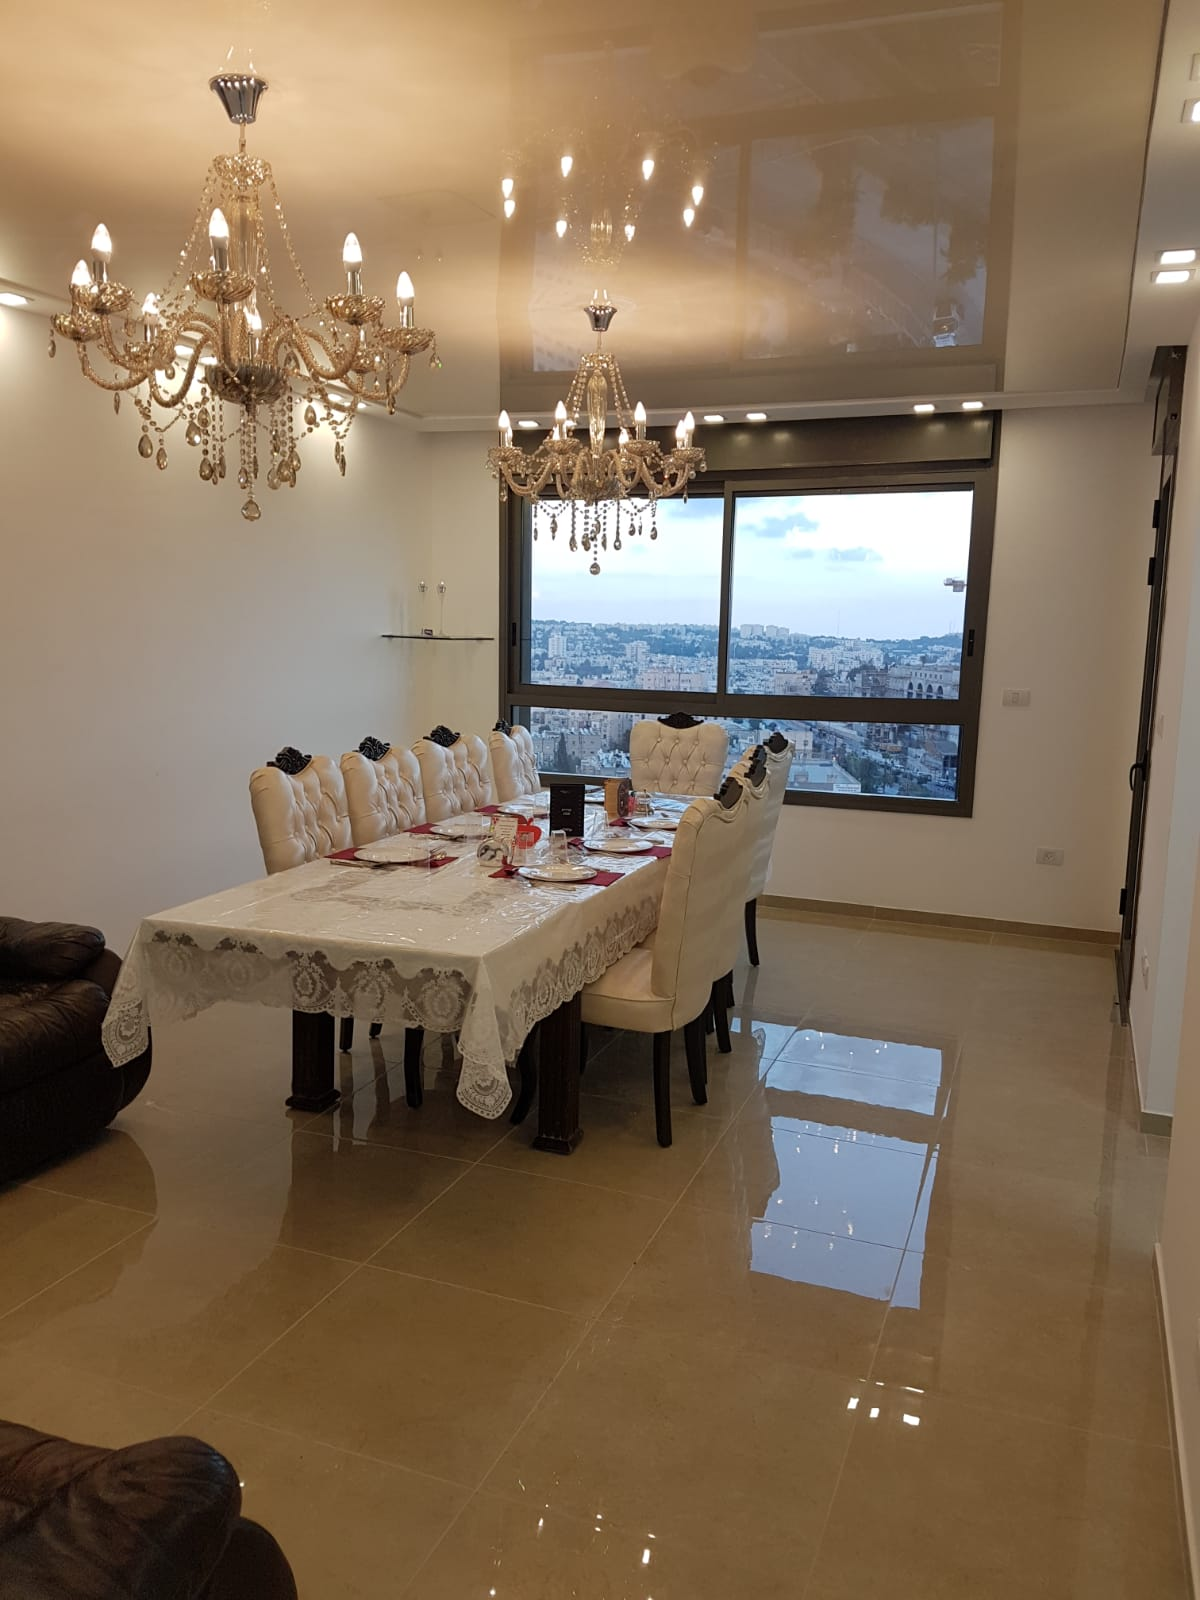 3 Bedroom Apartment in Kaduri